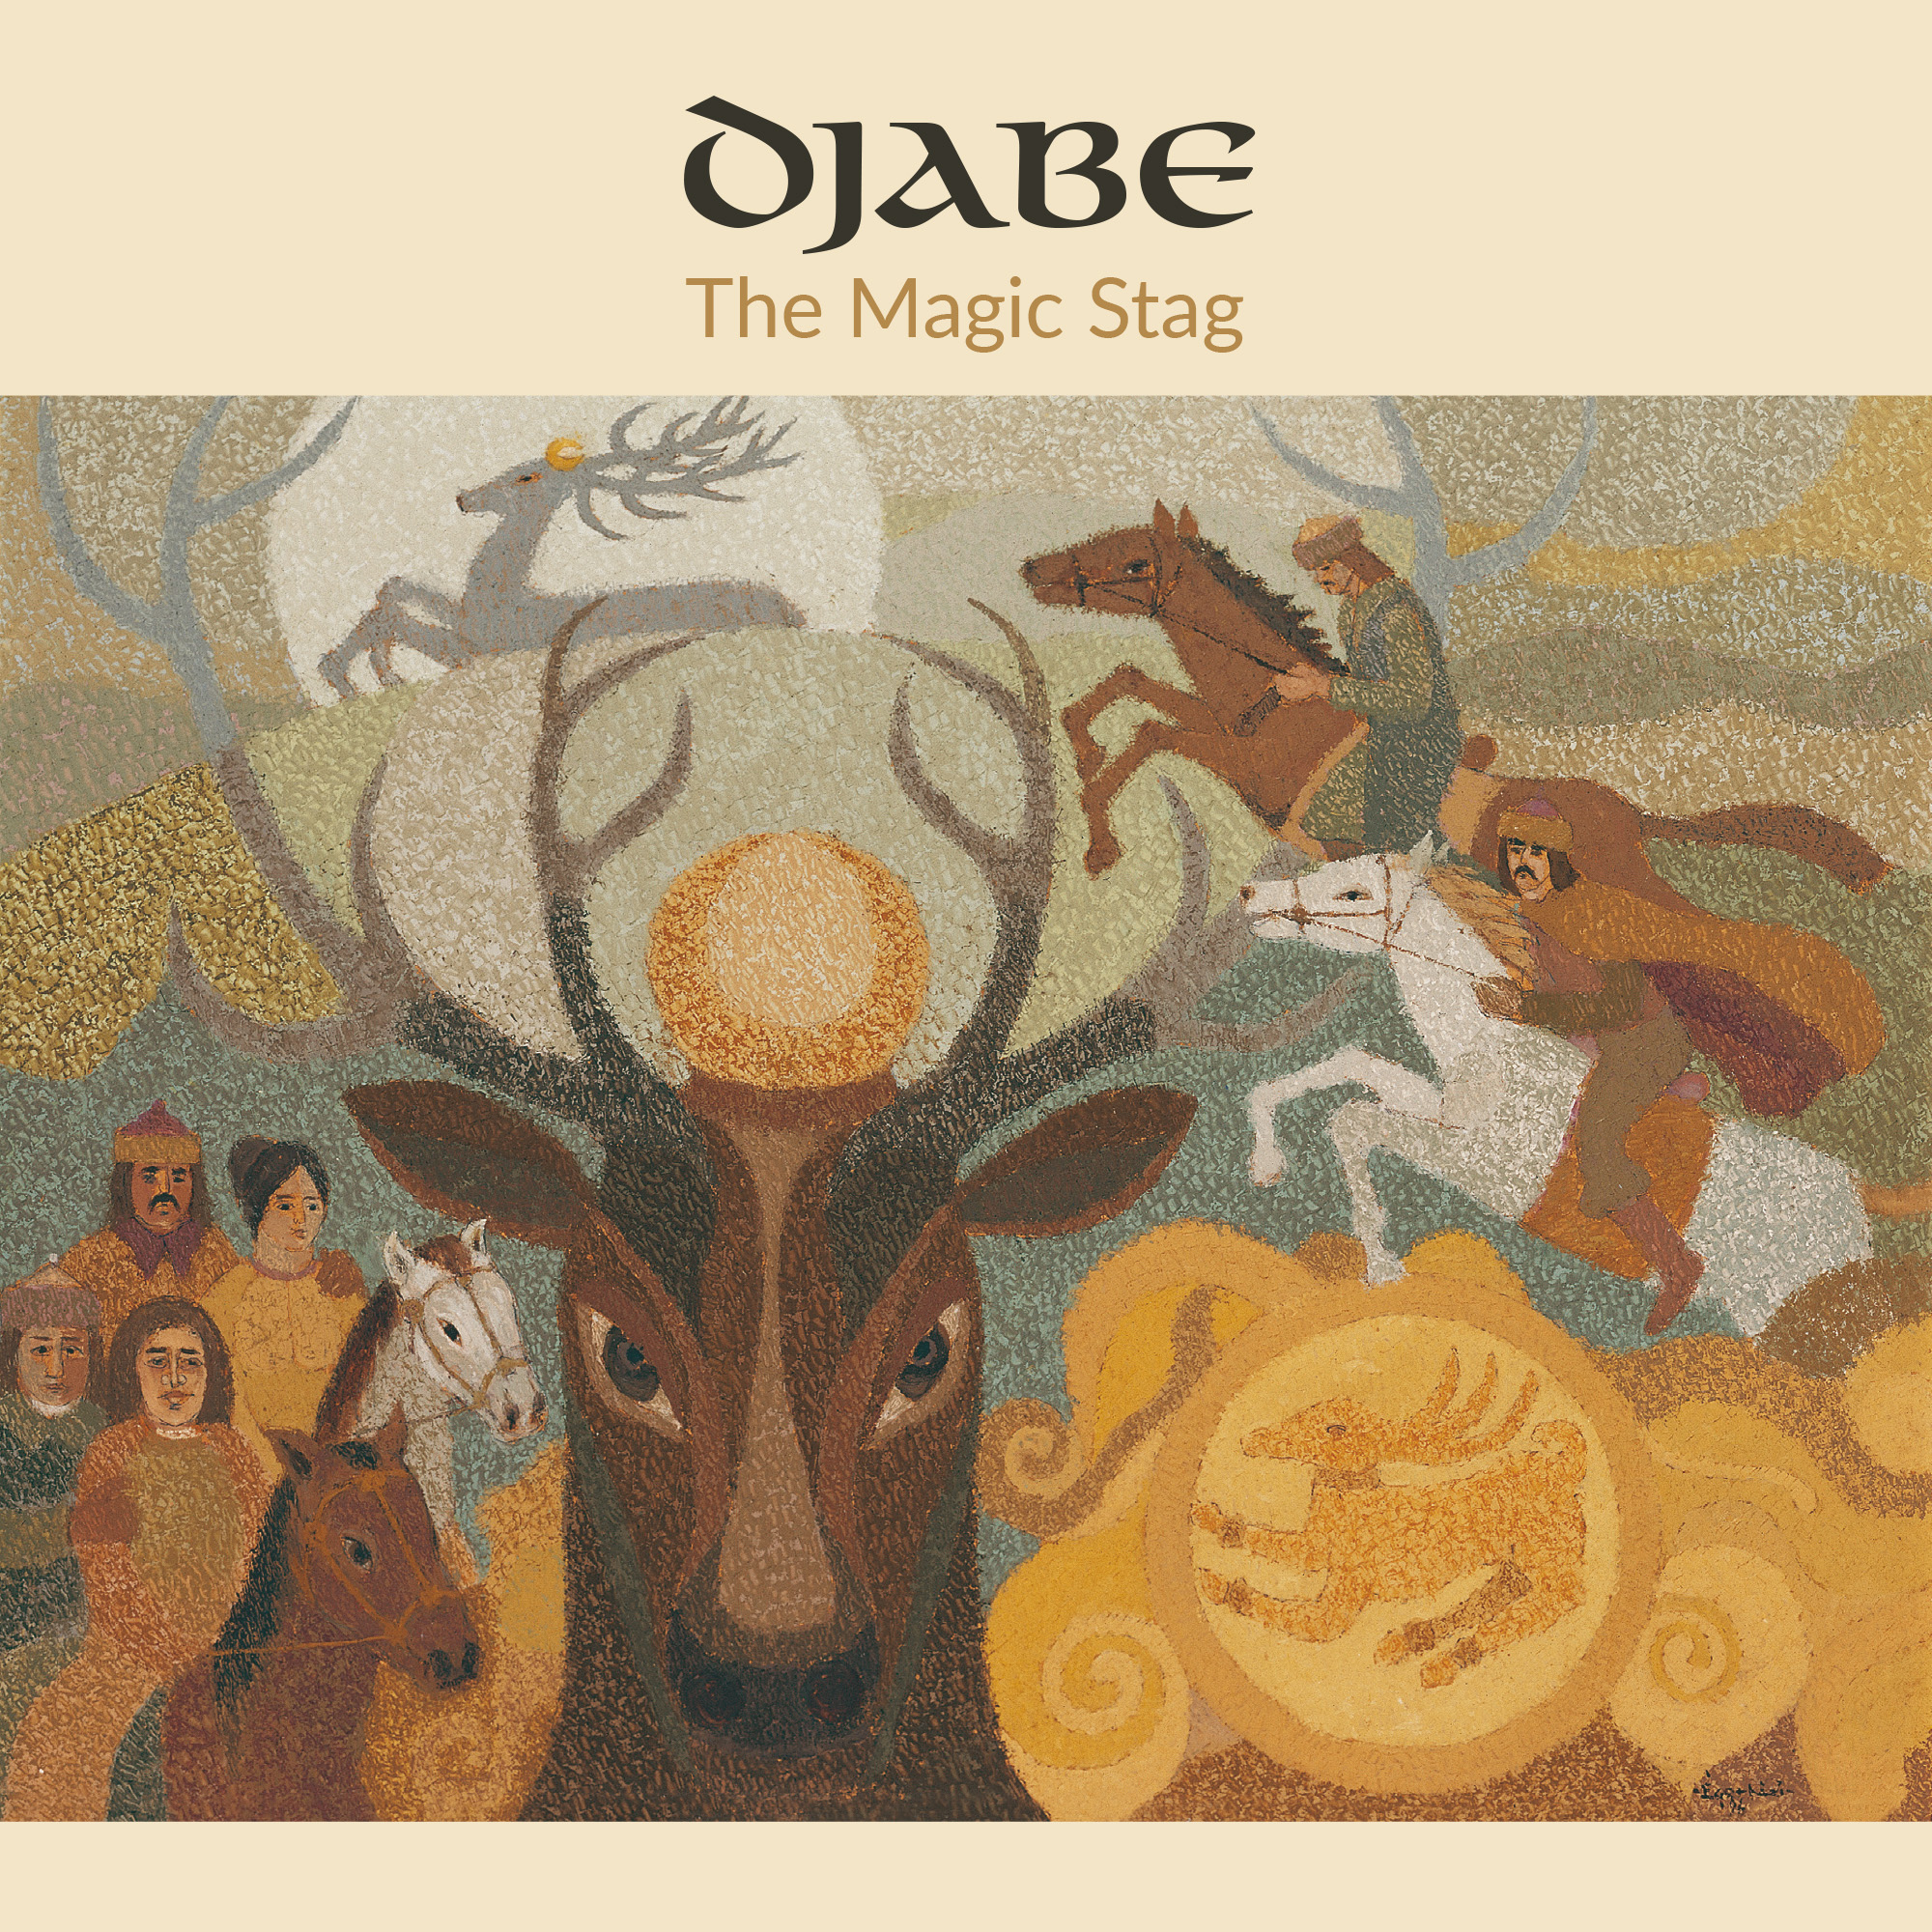 Djabe - The Magic Stag - 4 Track Reel-To-Reel Tape